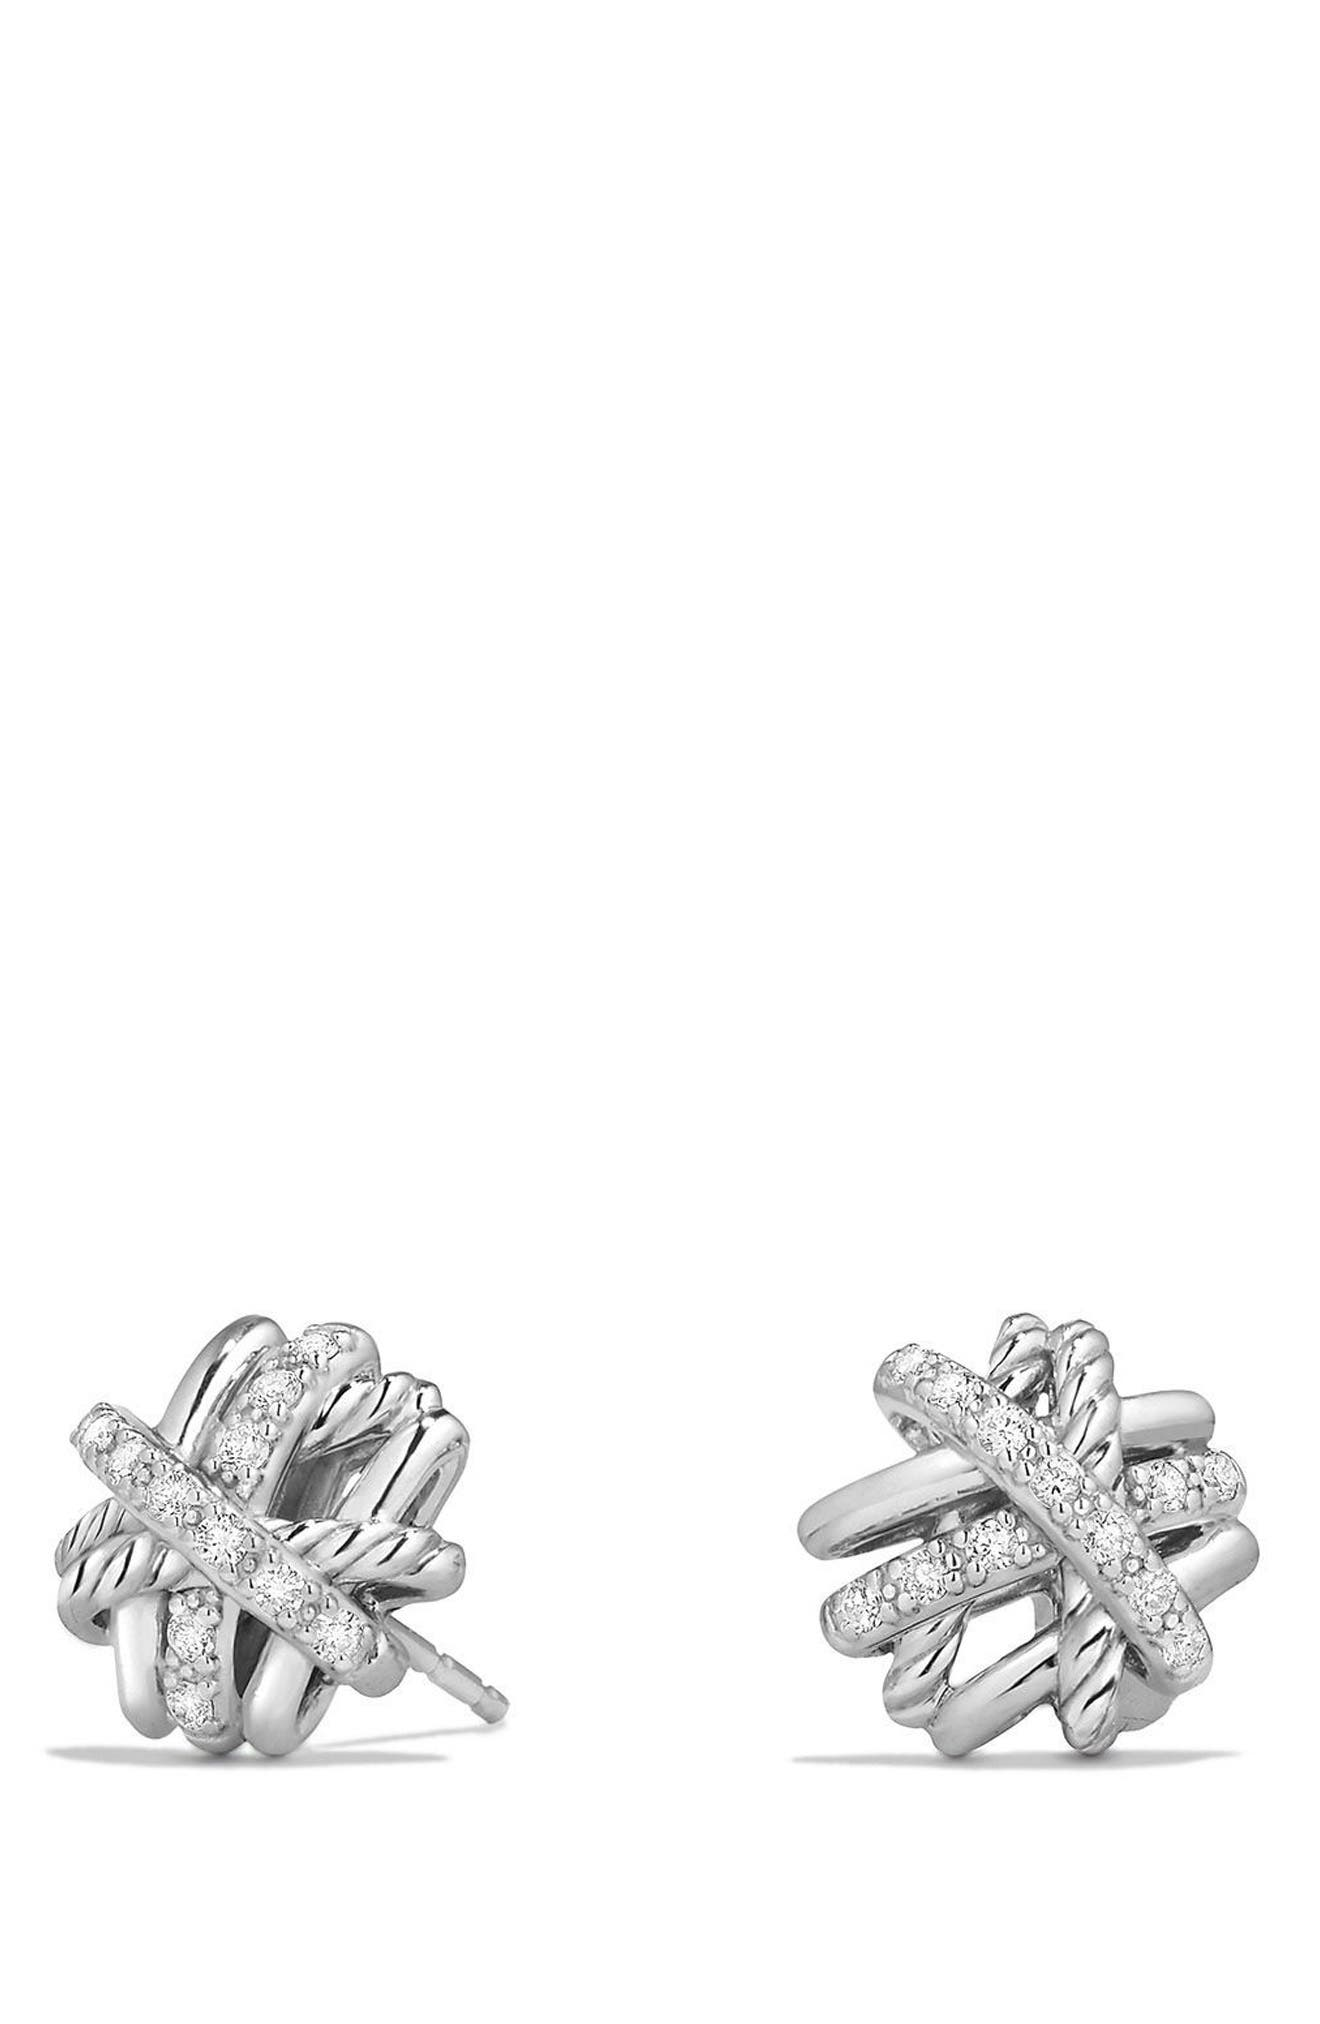 Crossover Stud Earrings with Diamonds,                             Main thumbnail 1, color,                             Silver/ Gold